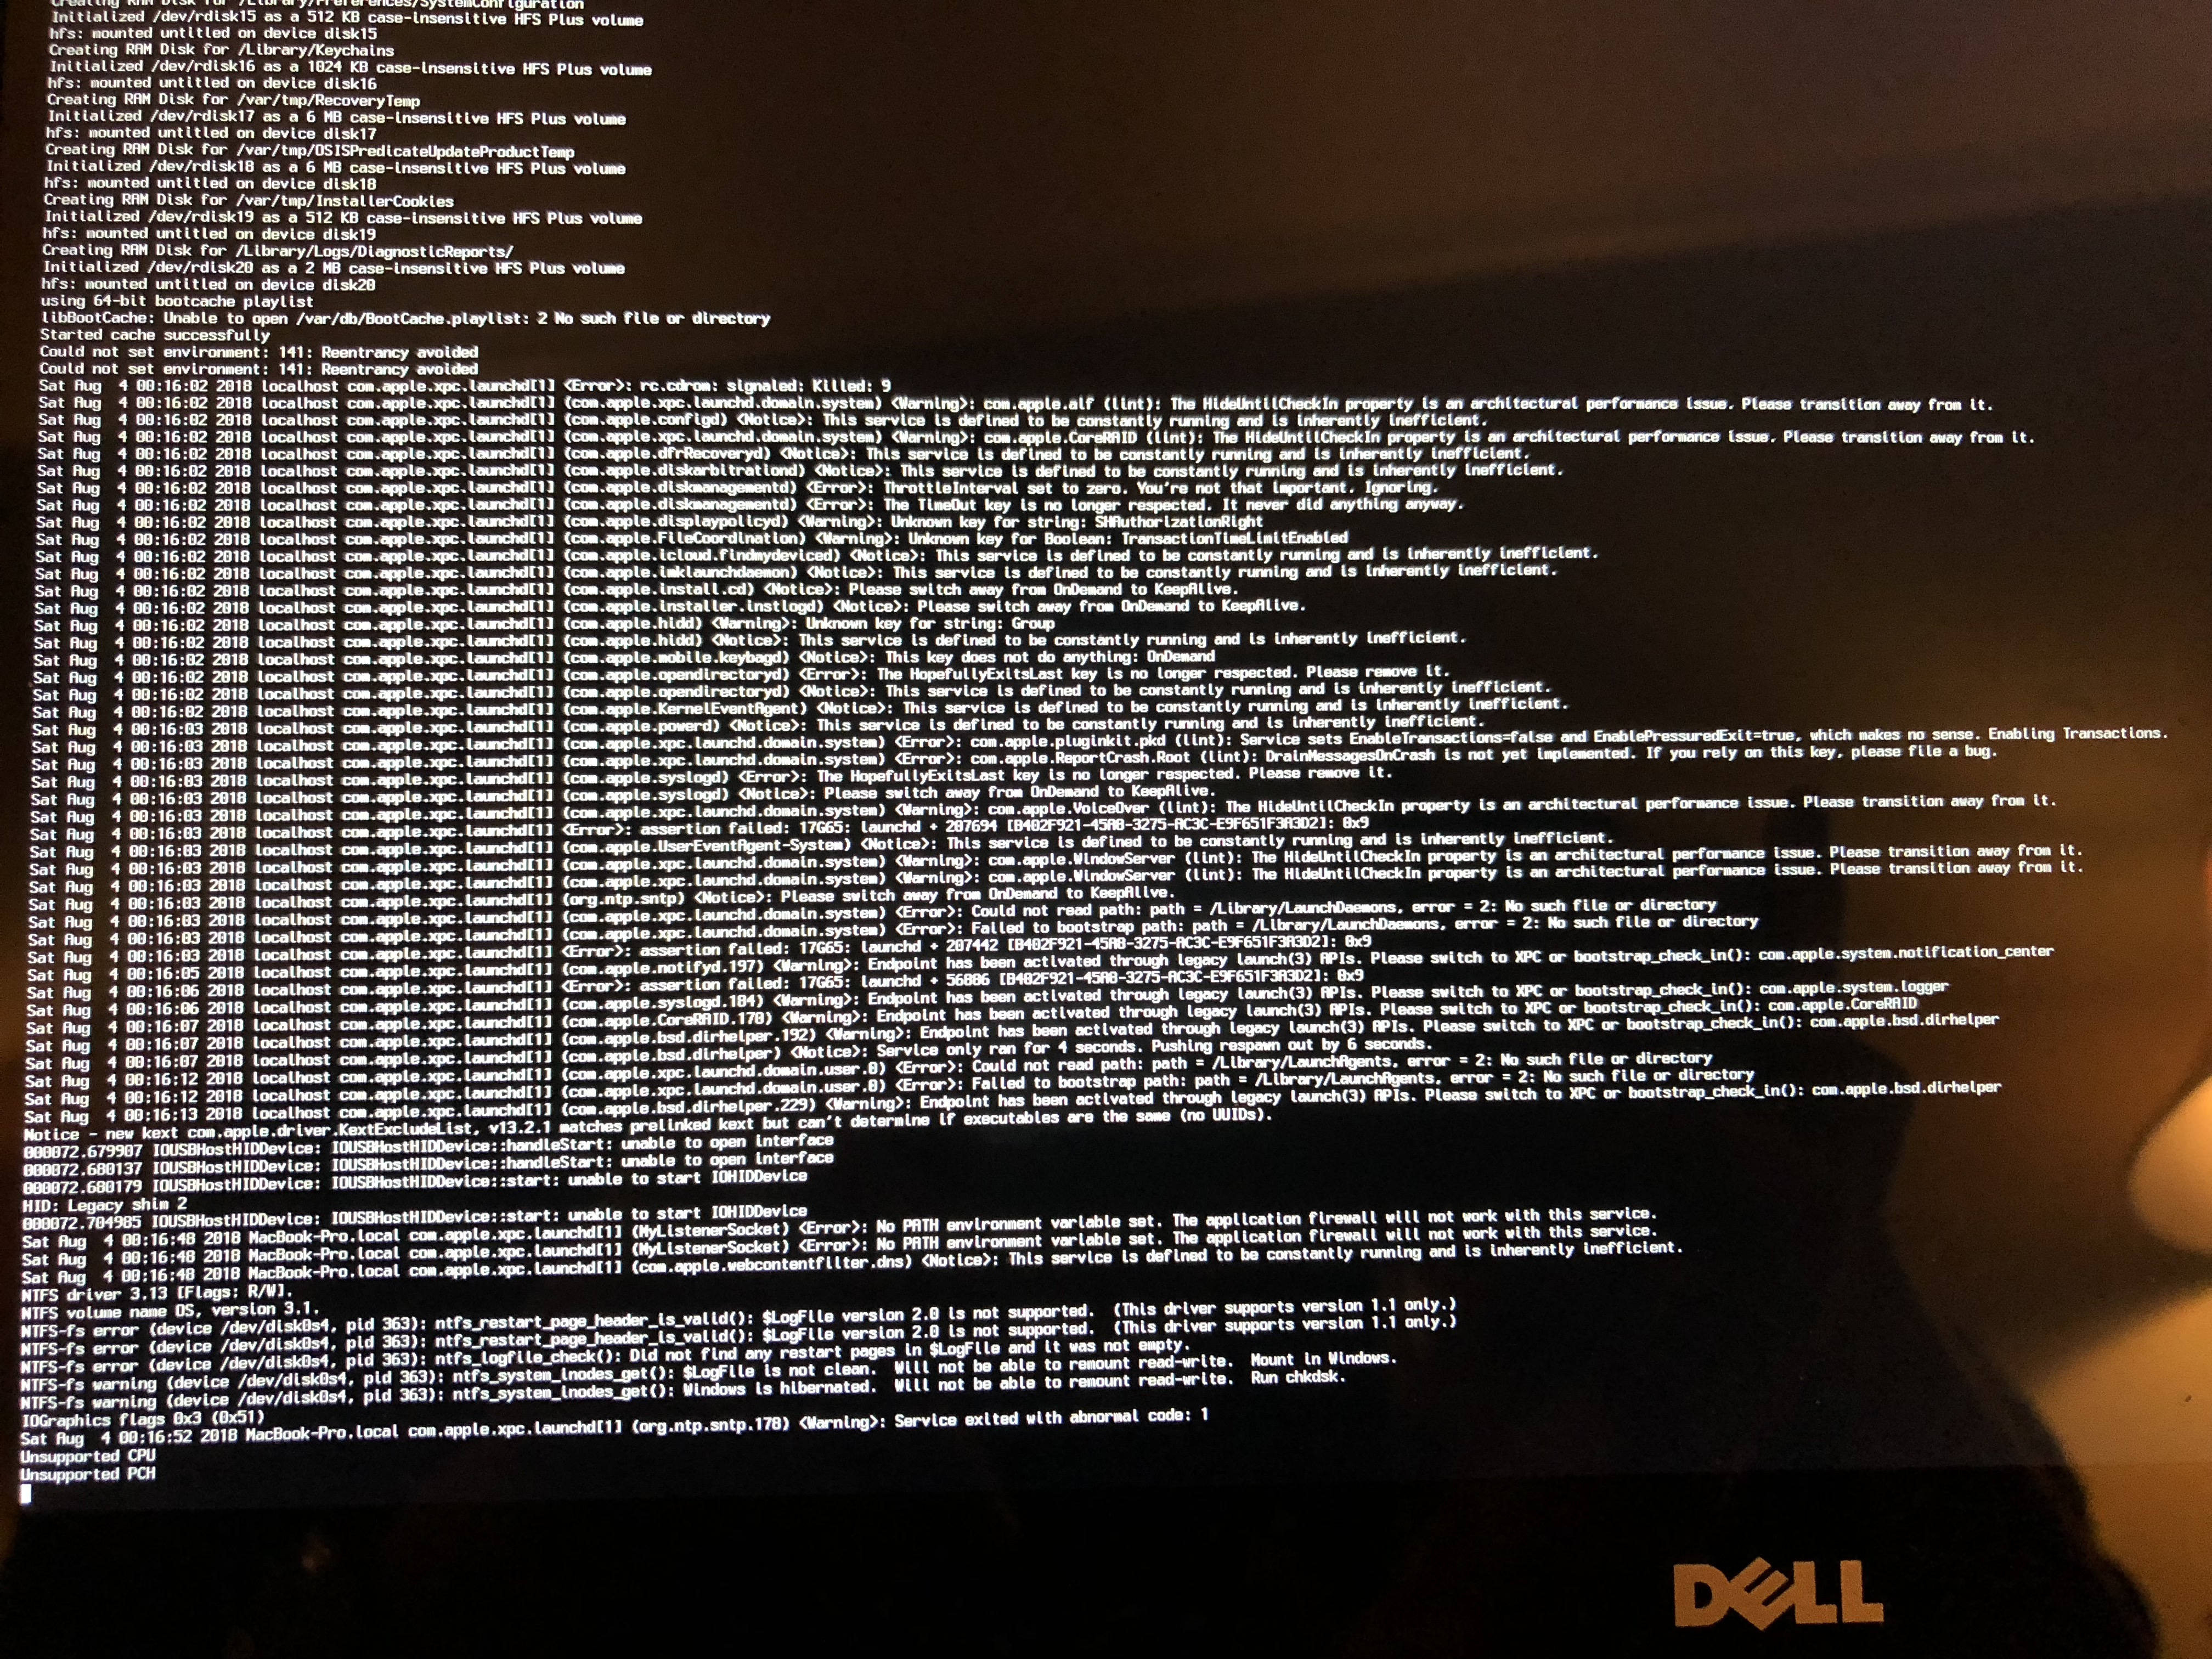 HELP] Dell XPS 9343 (2015) Unsupported CPU/PCH and other